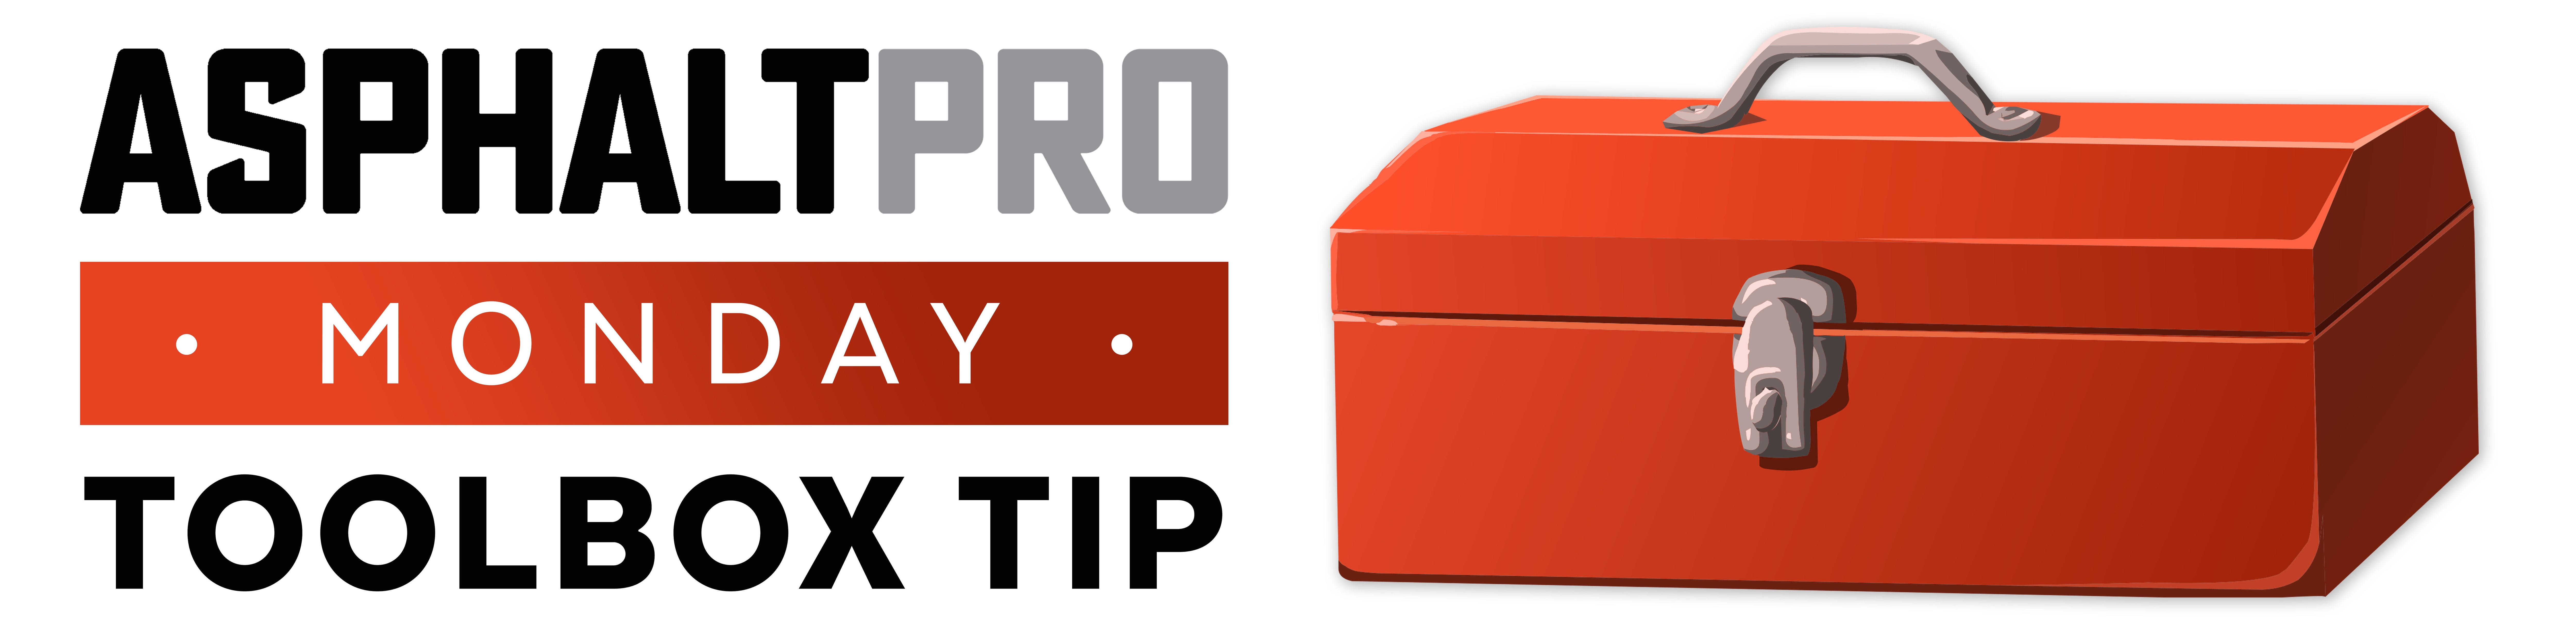 Safety certification for transportation project professionals aims toolbox tip 1betcityfo Gallery